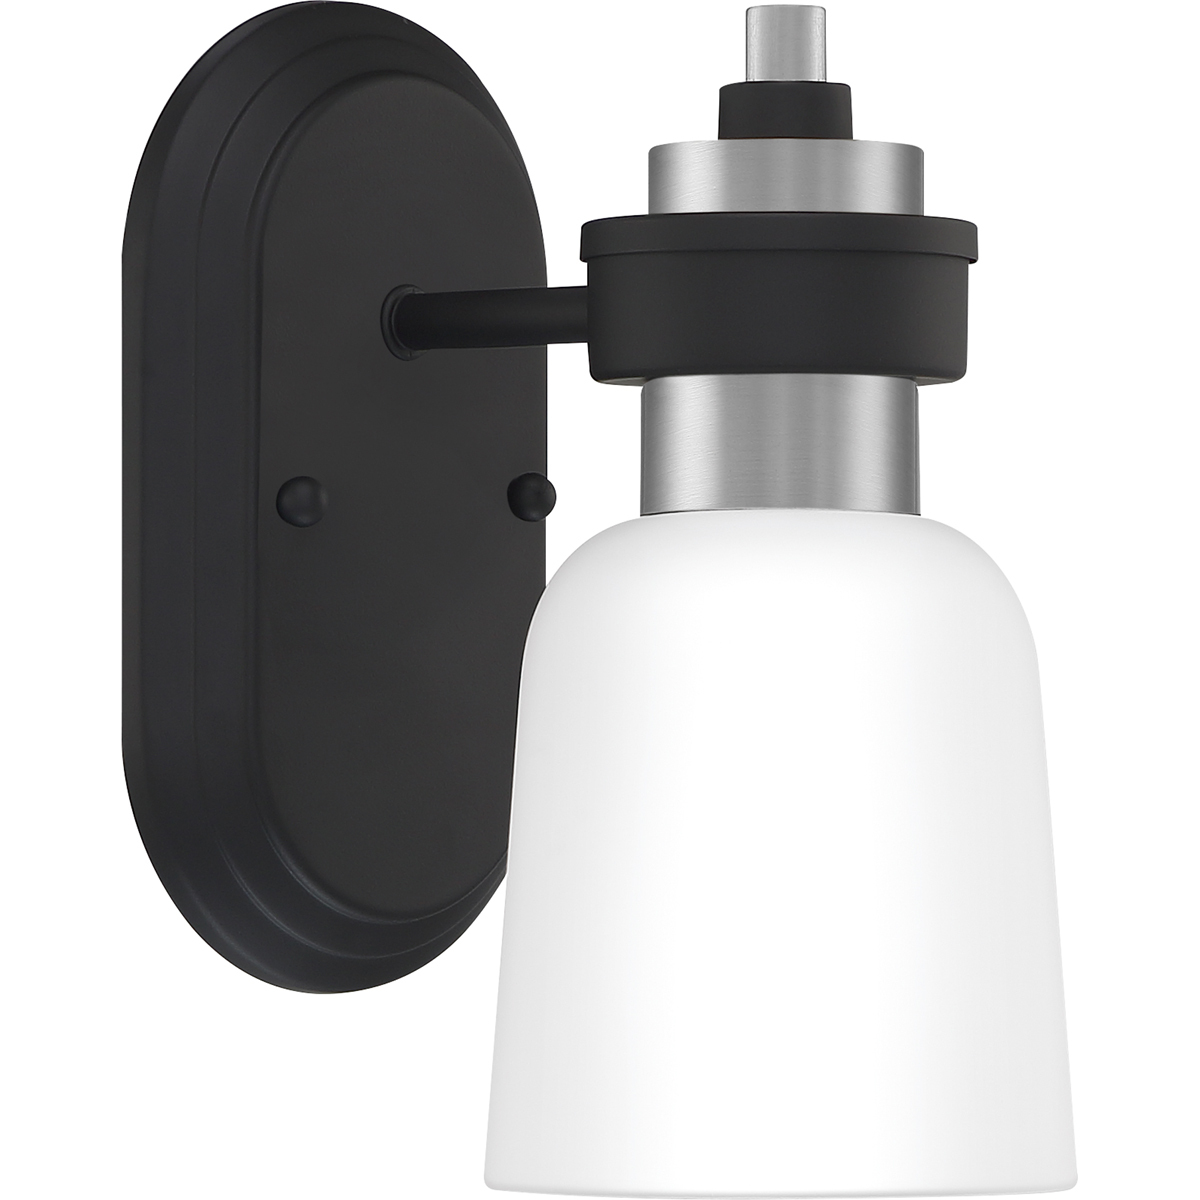 Conrad 1-Light Wall Sconce in Brushed Nickel - $59.99